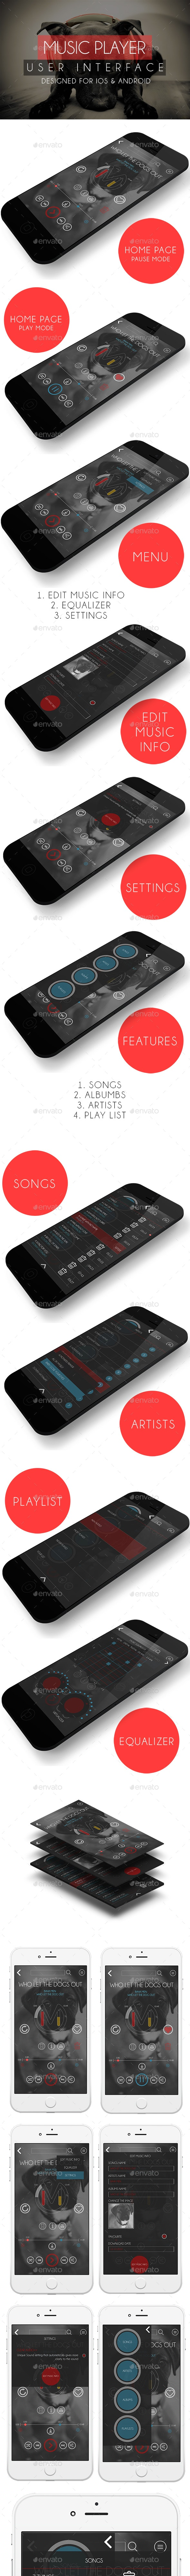 MUSIC PLAYER (USER INTERFACE) - User Interfaces Web Elements